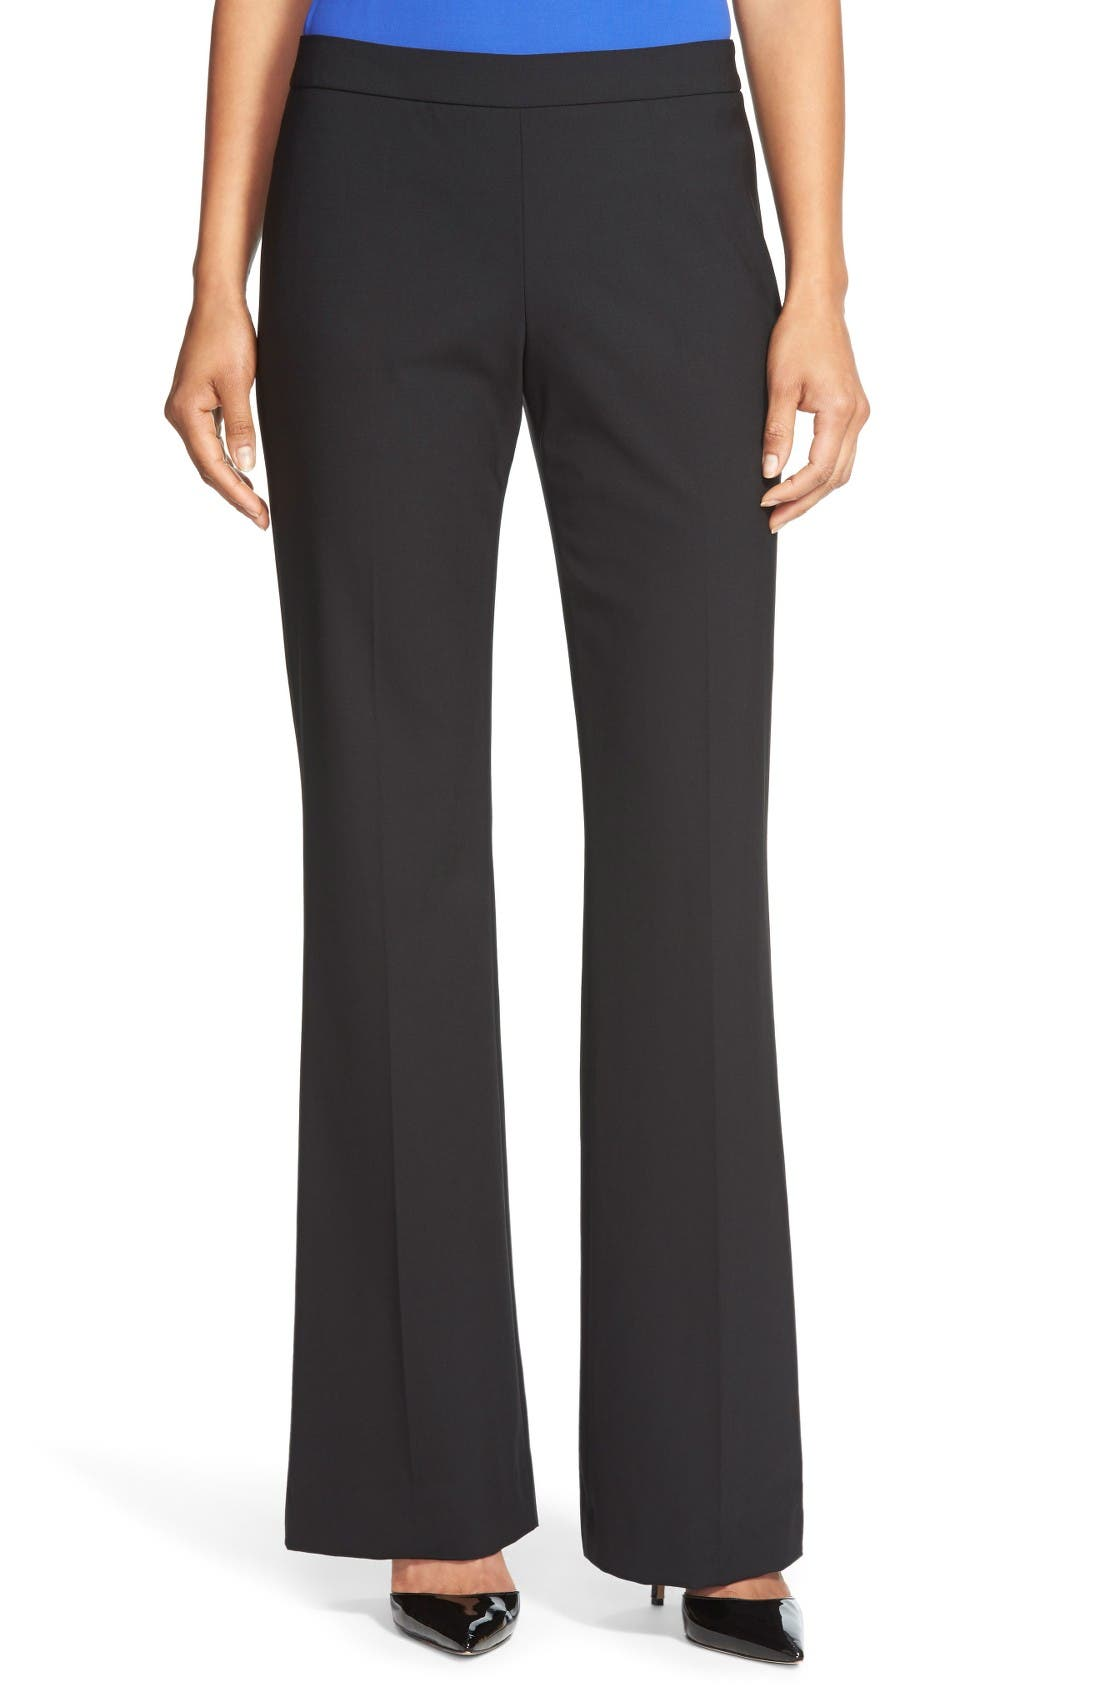 Tulea Side Zip Tropical Stretch Wool Trousers,                             Main thumbnail 1, color,                             Black